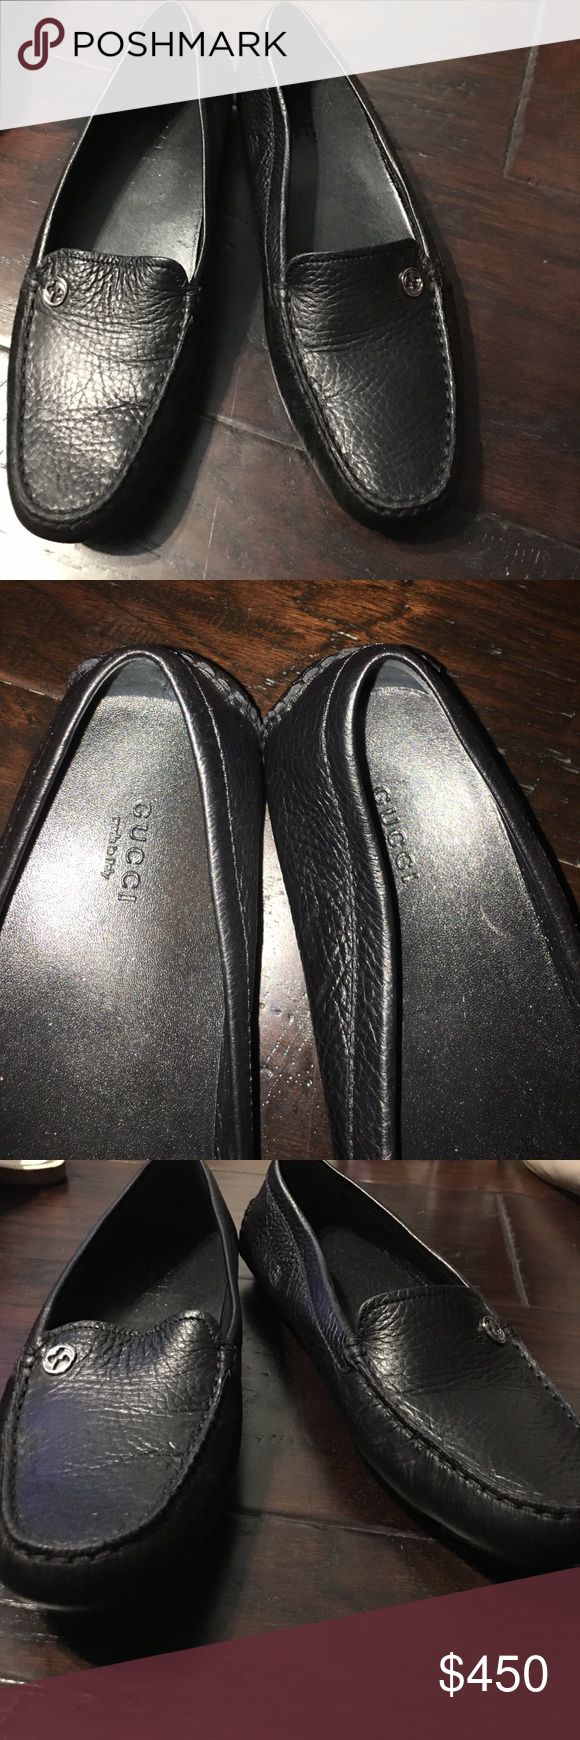 Black Gucci Loafers Black GUCCI loafers. Great condition and amazing price for the original! Offers are welcome :)! Gucci Shoes Flats & Loafers